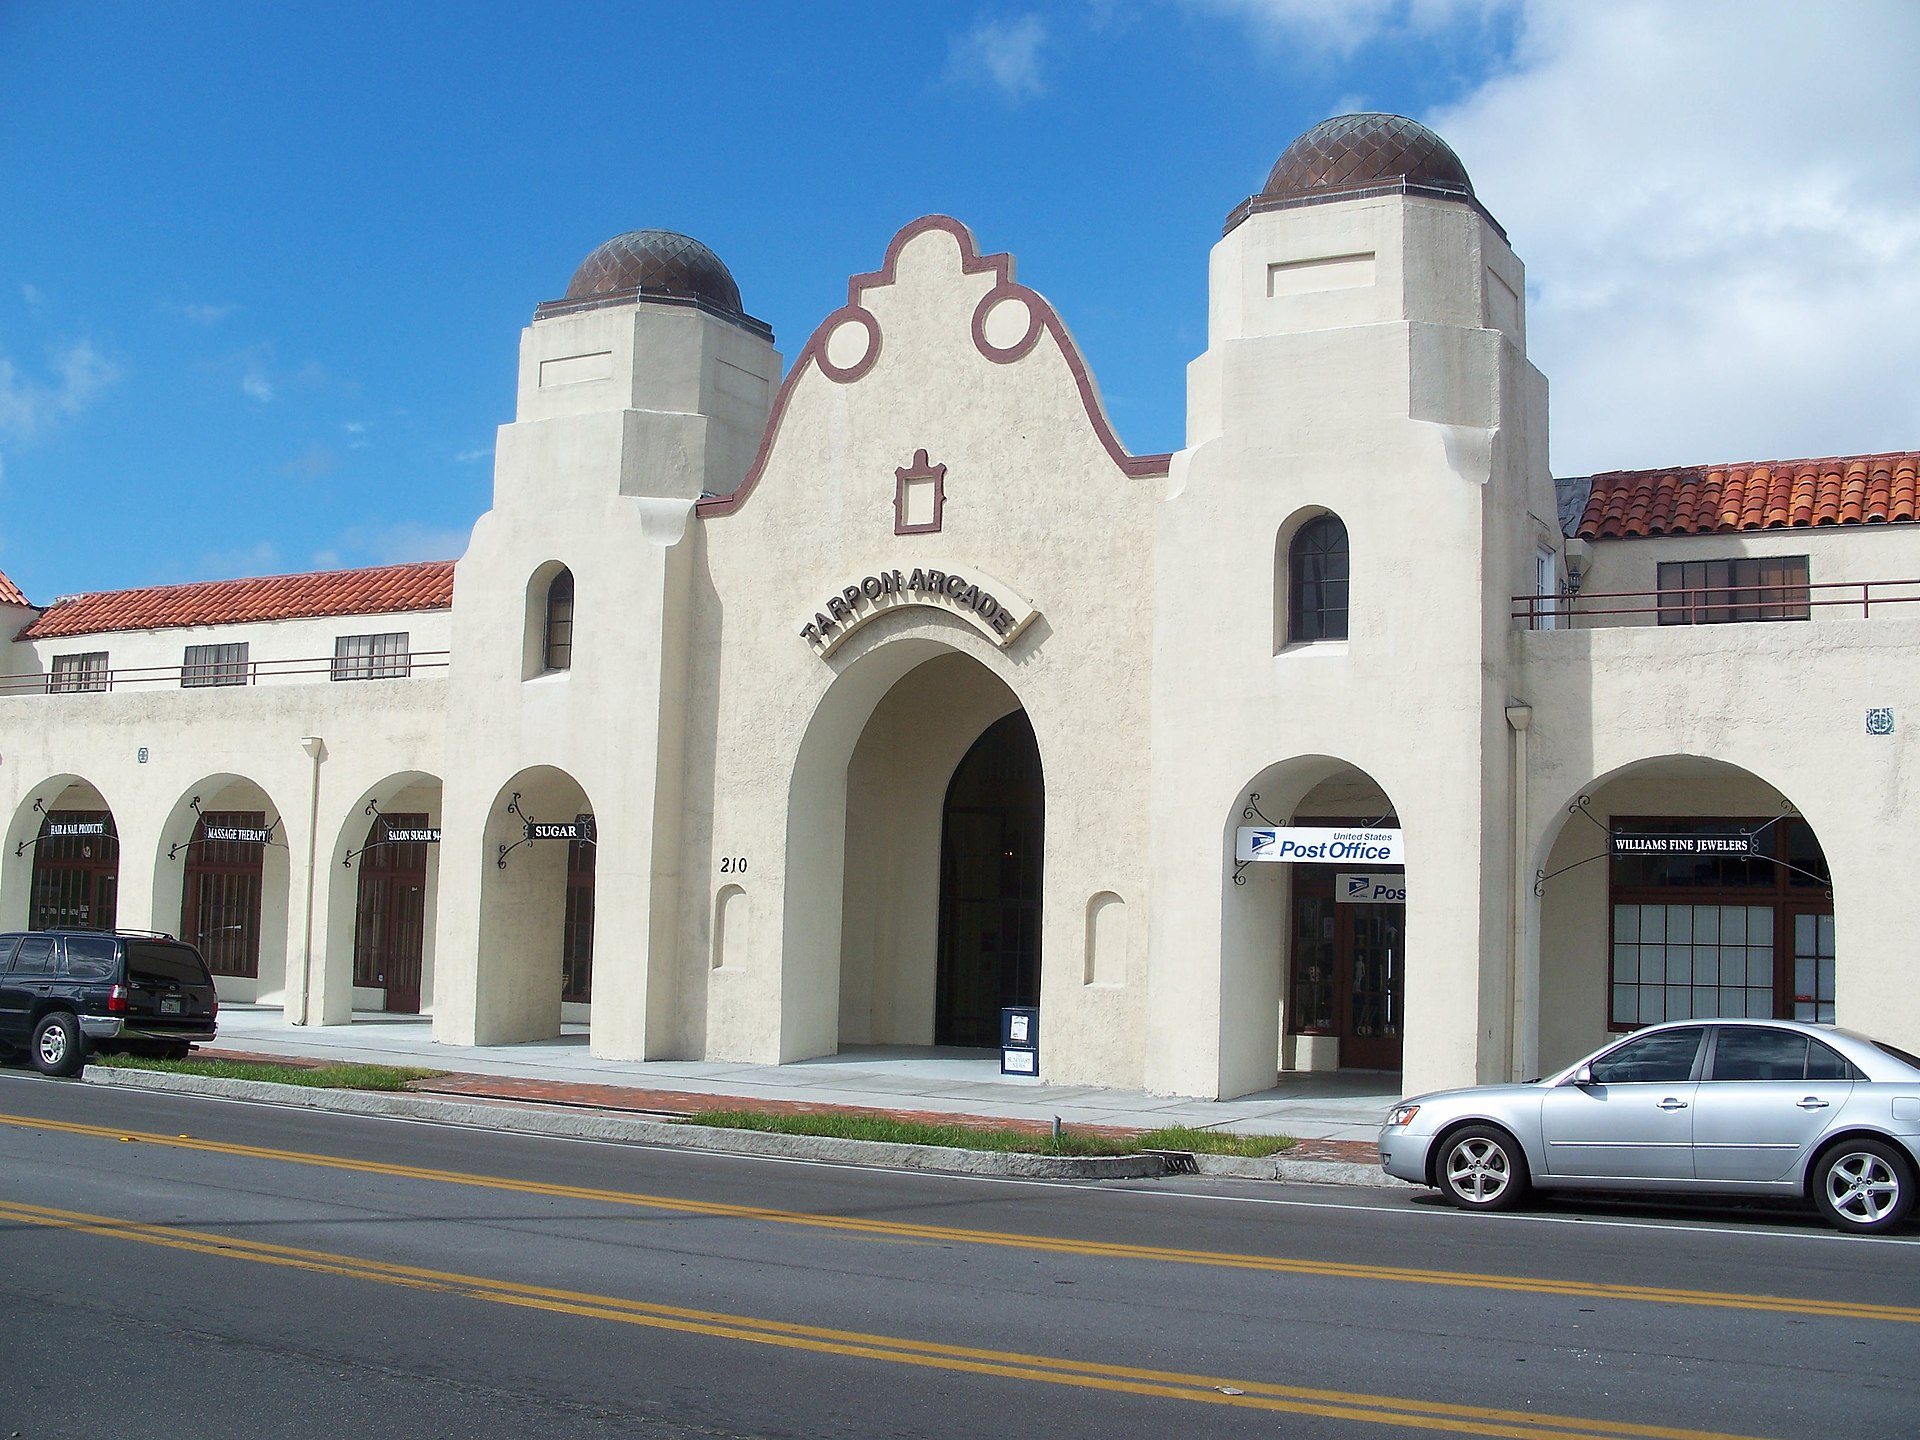 tarpon springs jewish singles Saint petersburg, pinellas county, florida florida's fourth largest city, with 61 square miles, is located on the west coast of florida in pinellas county (st petersburg, clearwater, palm.